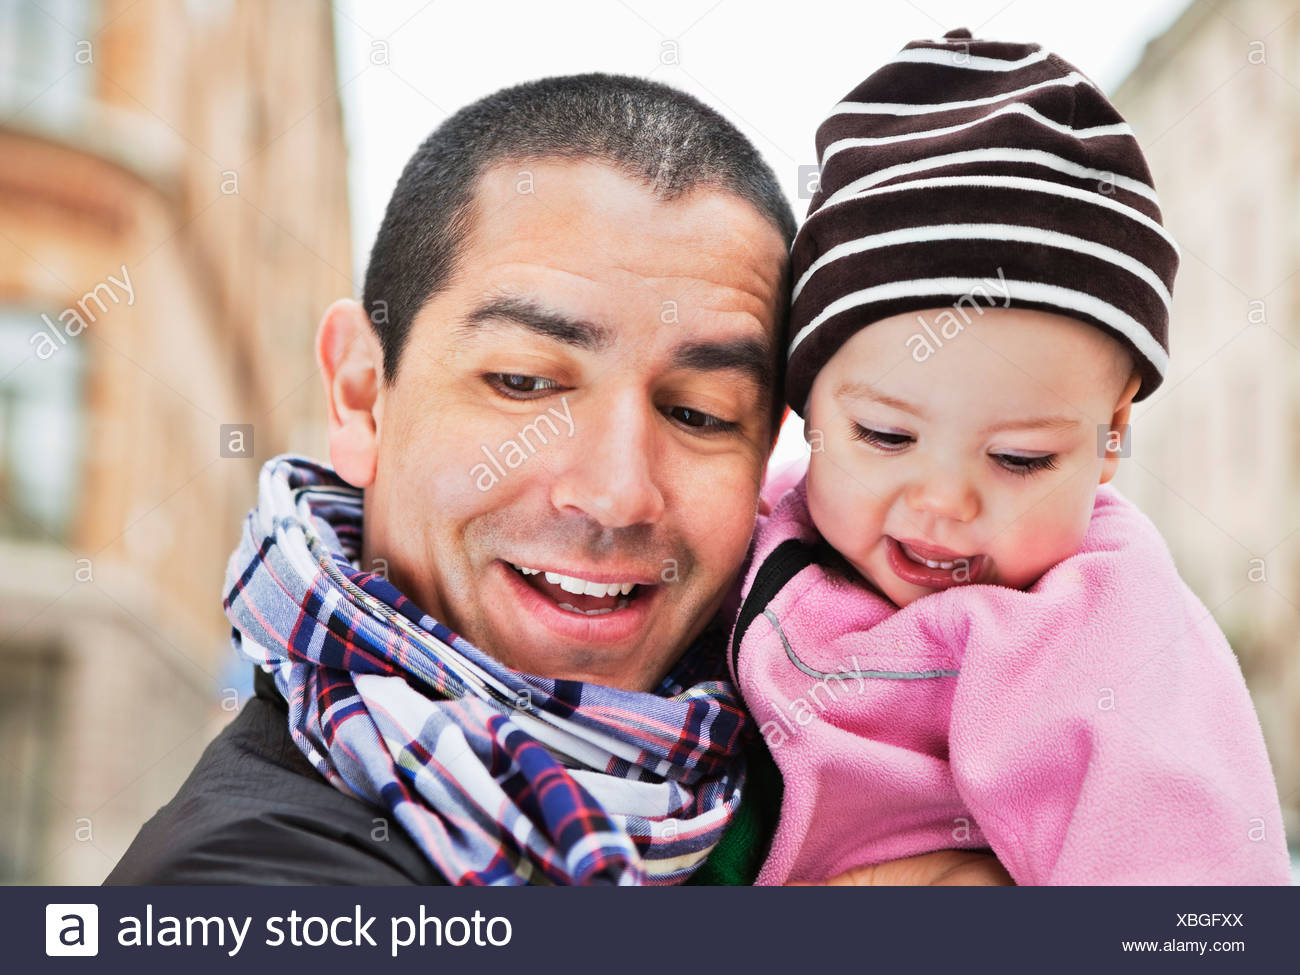 Close-up of father and baby (0-11 months) looking down - Stock Image